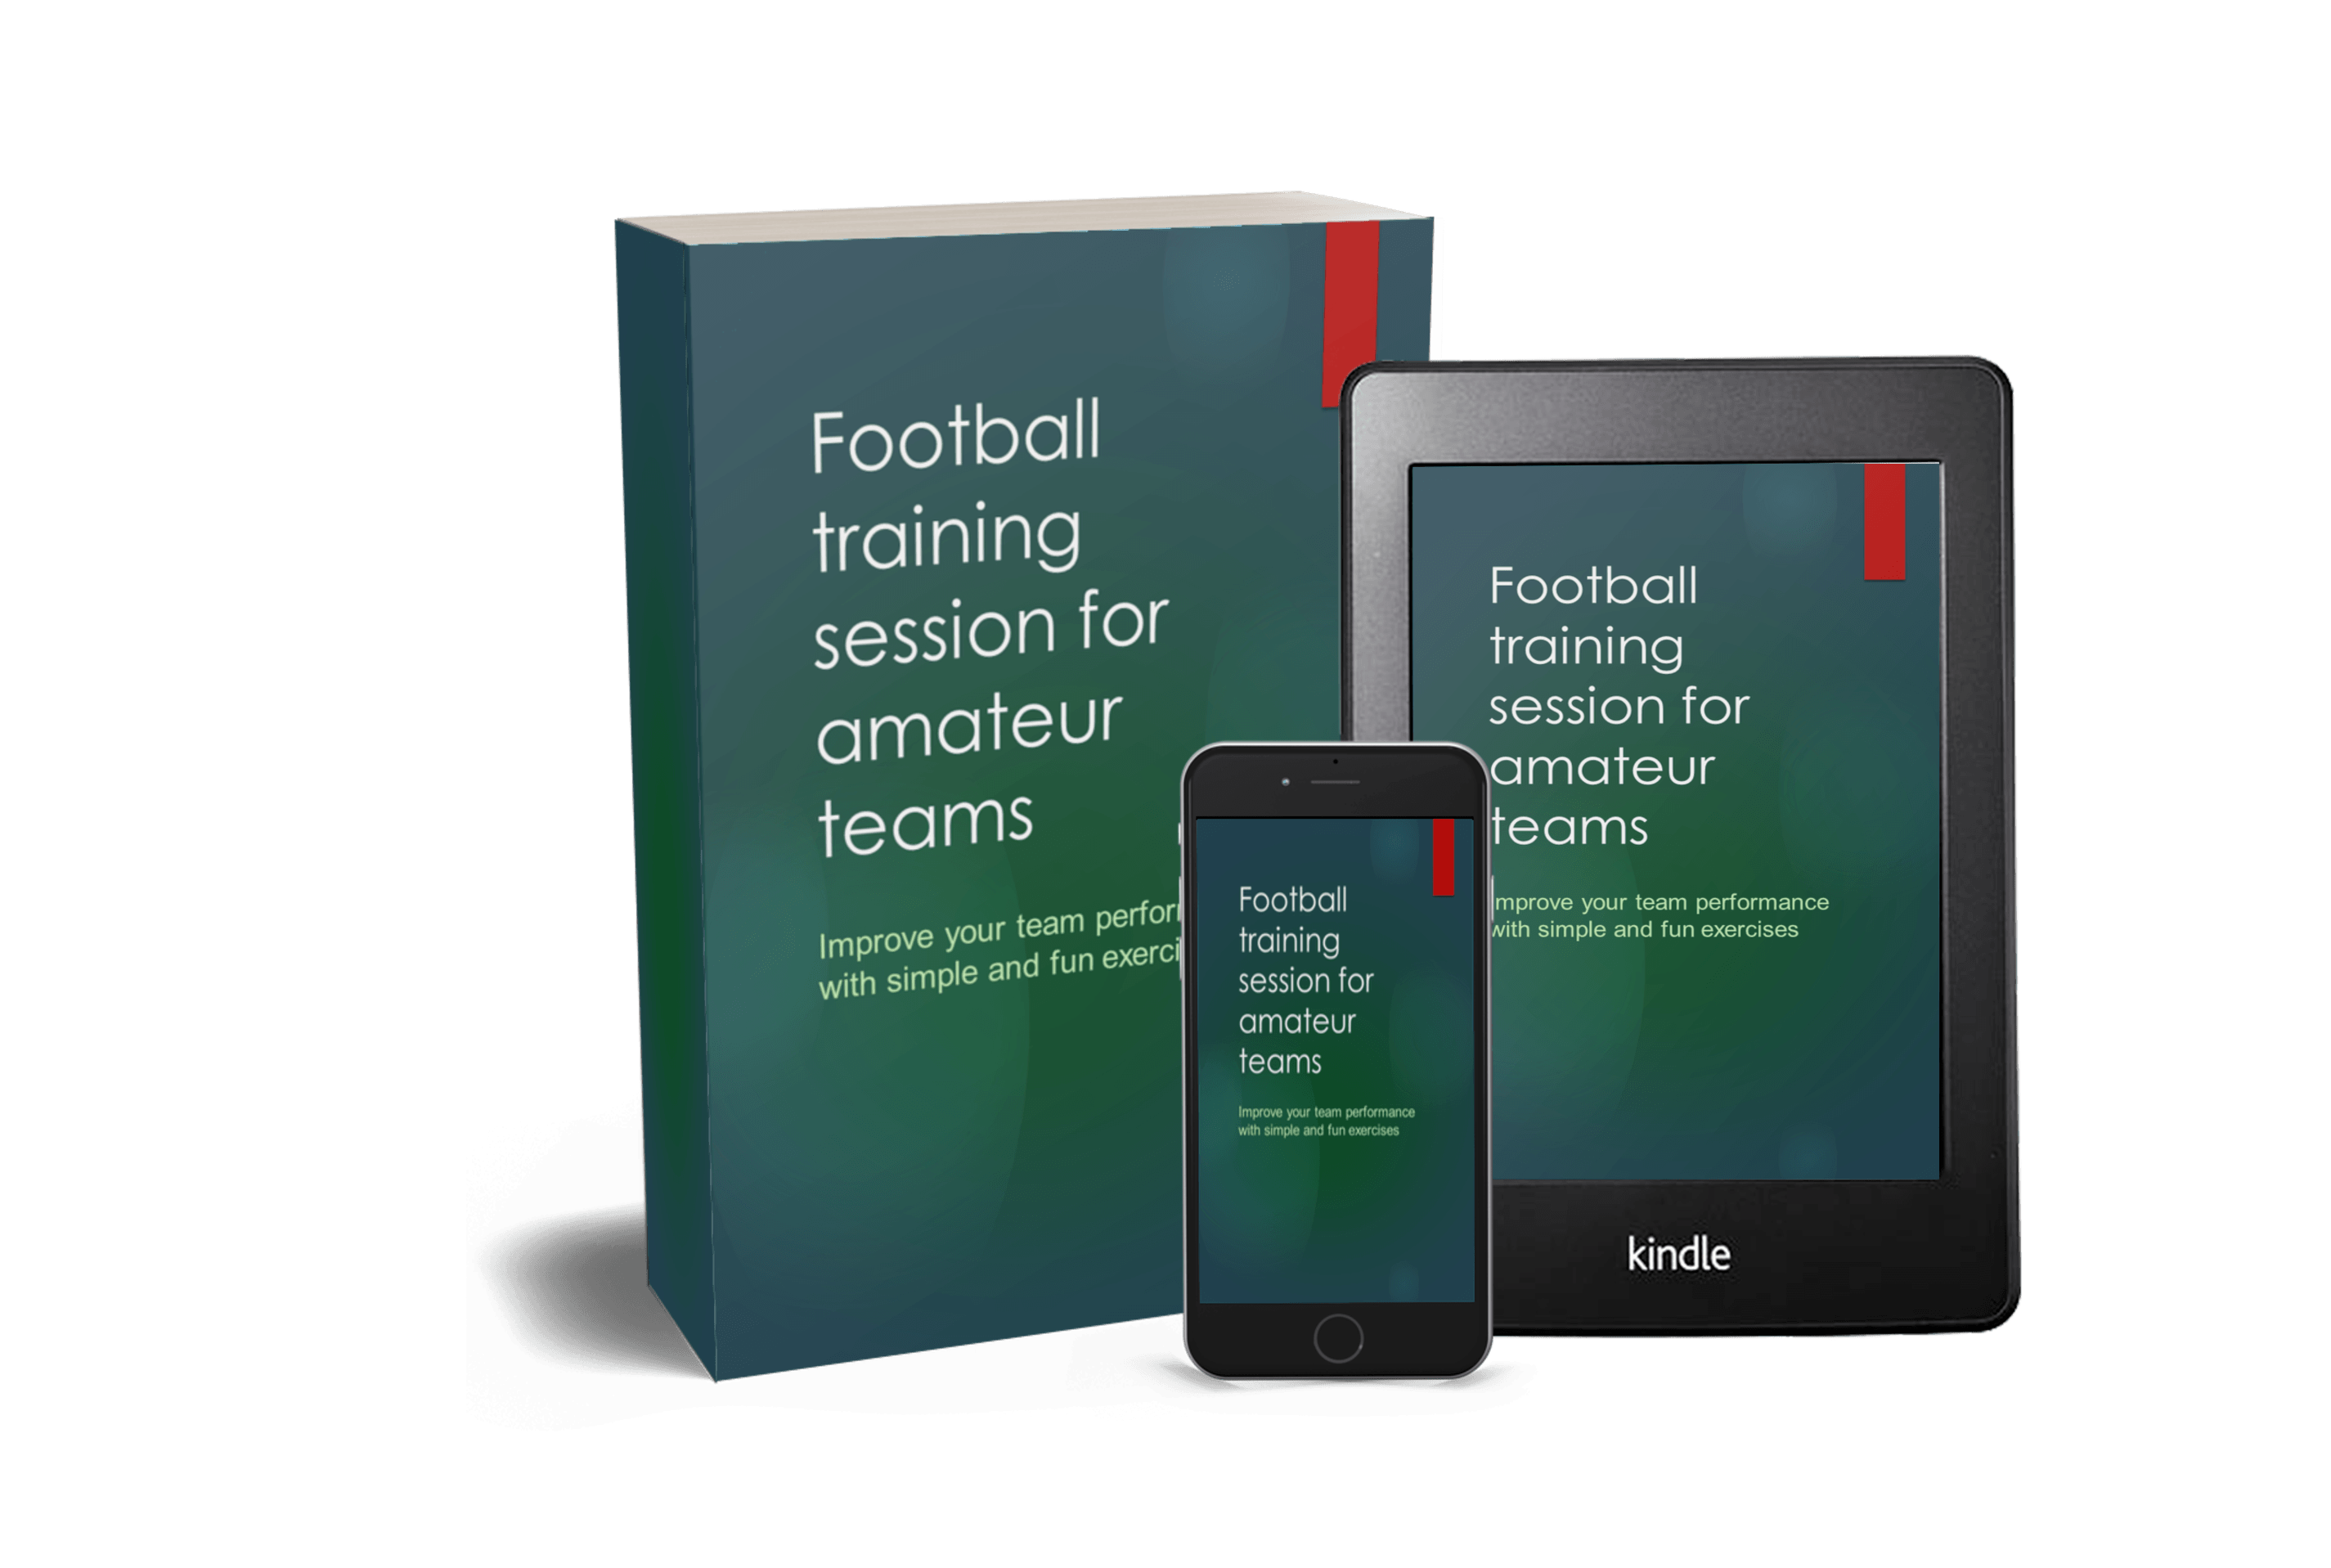 Football Training Session For Amateur Teams